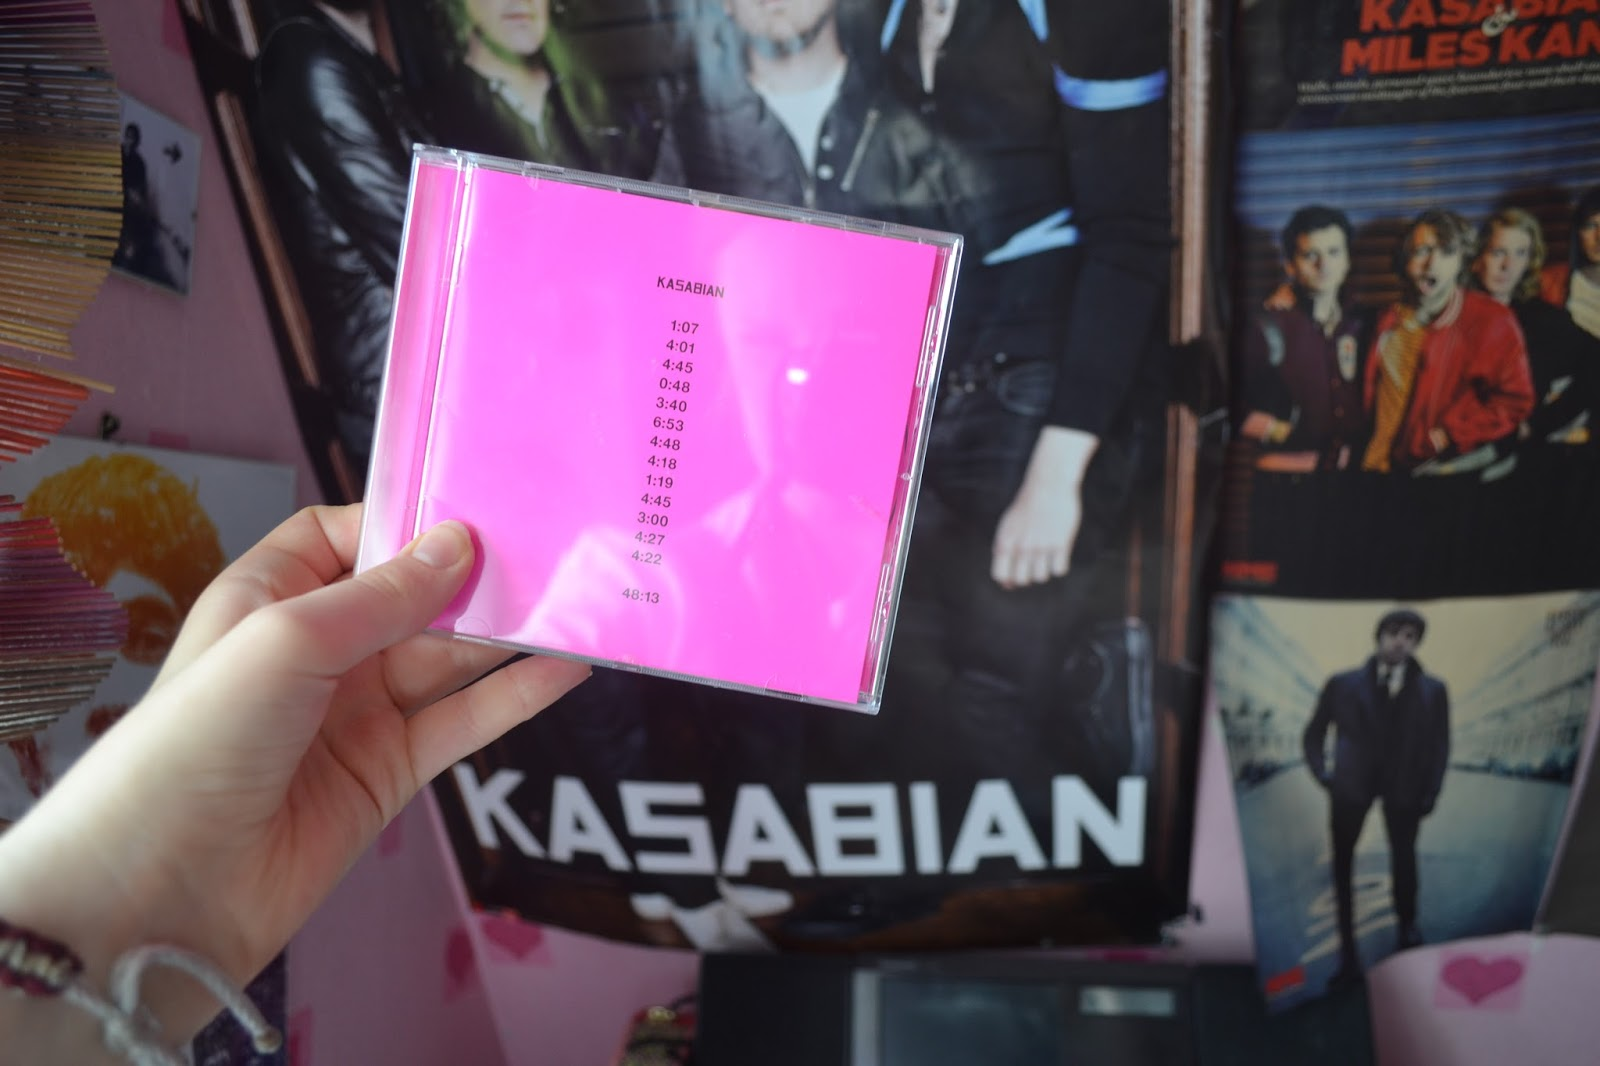 Kasabian 48:13 and Kasabian poster